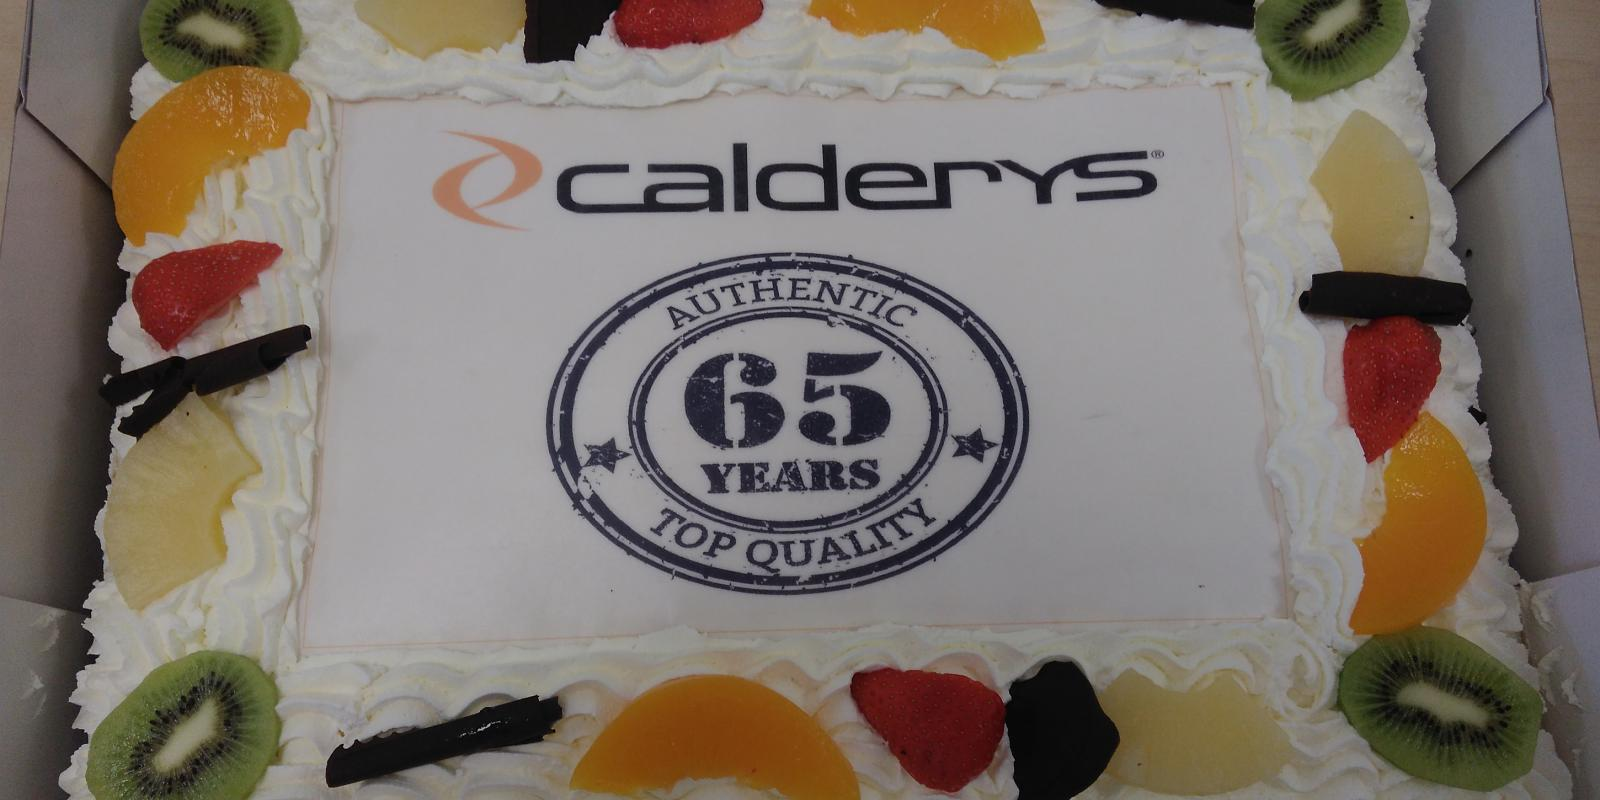 Happy 65th Birthday to Calderys in the Netherlands